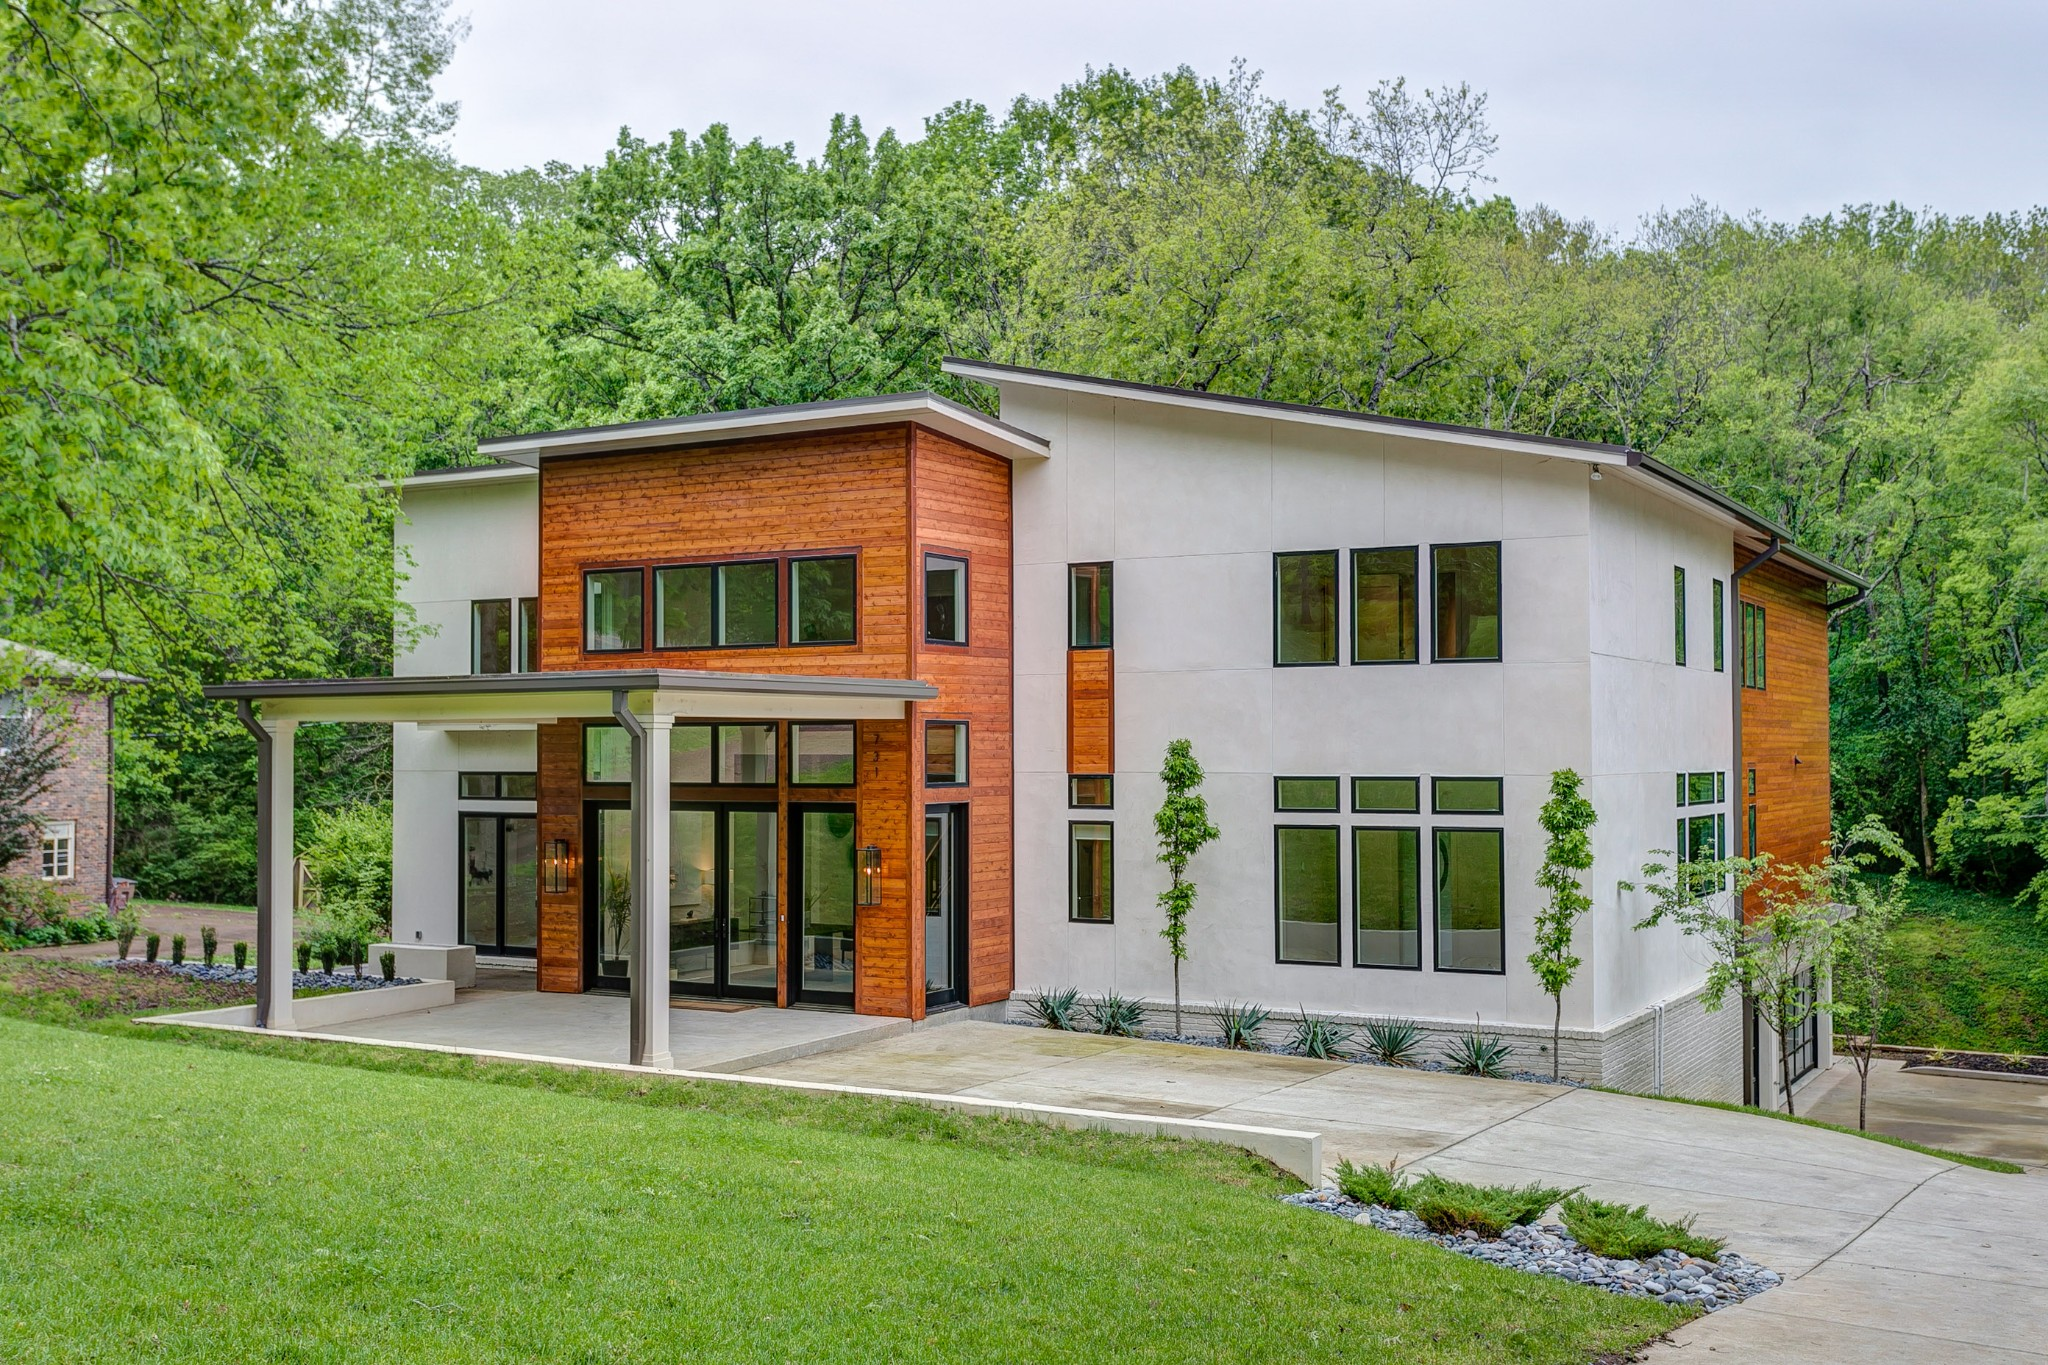 Contemporary Living ~Finest Timeless Finishes~ venetian plaster, standing seam bronze roof & gutters, floating interior steps w/ custom Railings By Art House, Zebra Wood & Macassar Ebony Kitchen Cabinets, Dacor Premium Kitchen Appliances for the gourmet cook. 6ft+ Built in pantry, Coffee Bar/Smoothie Station and more. Master Suite & luxurious Bath, Calacatta Marble and Brizo Faucets, Floating Tub and Steam Shower, custom closets. Smart Wired Crestron System It's a must see for the connoisseur.